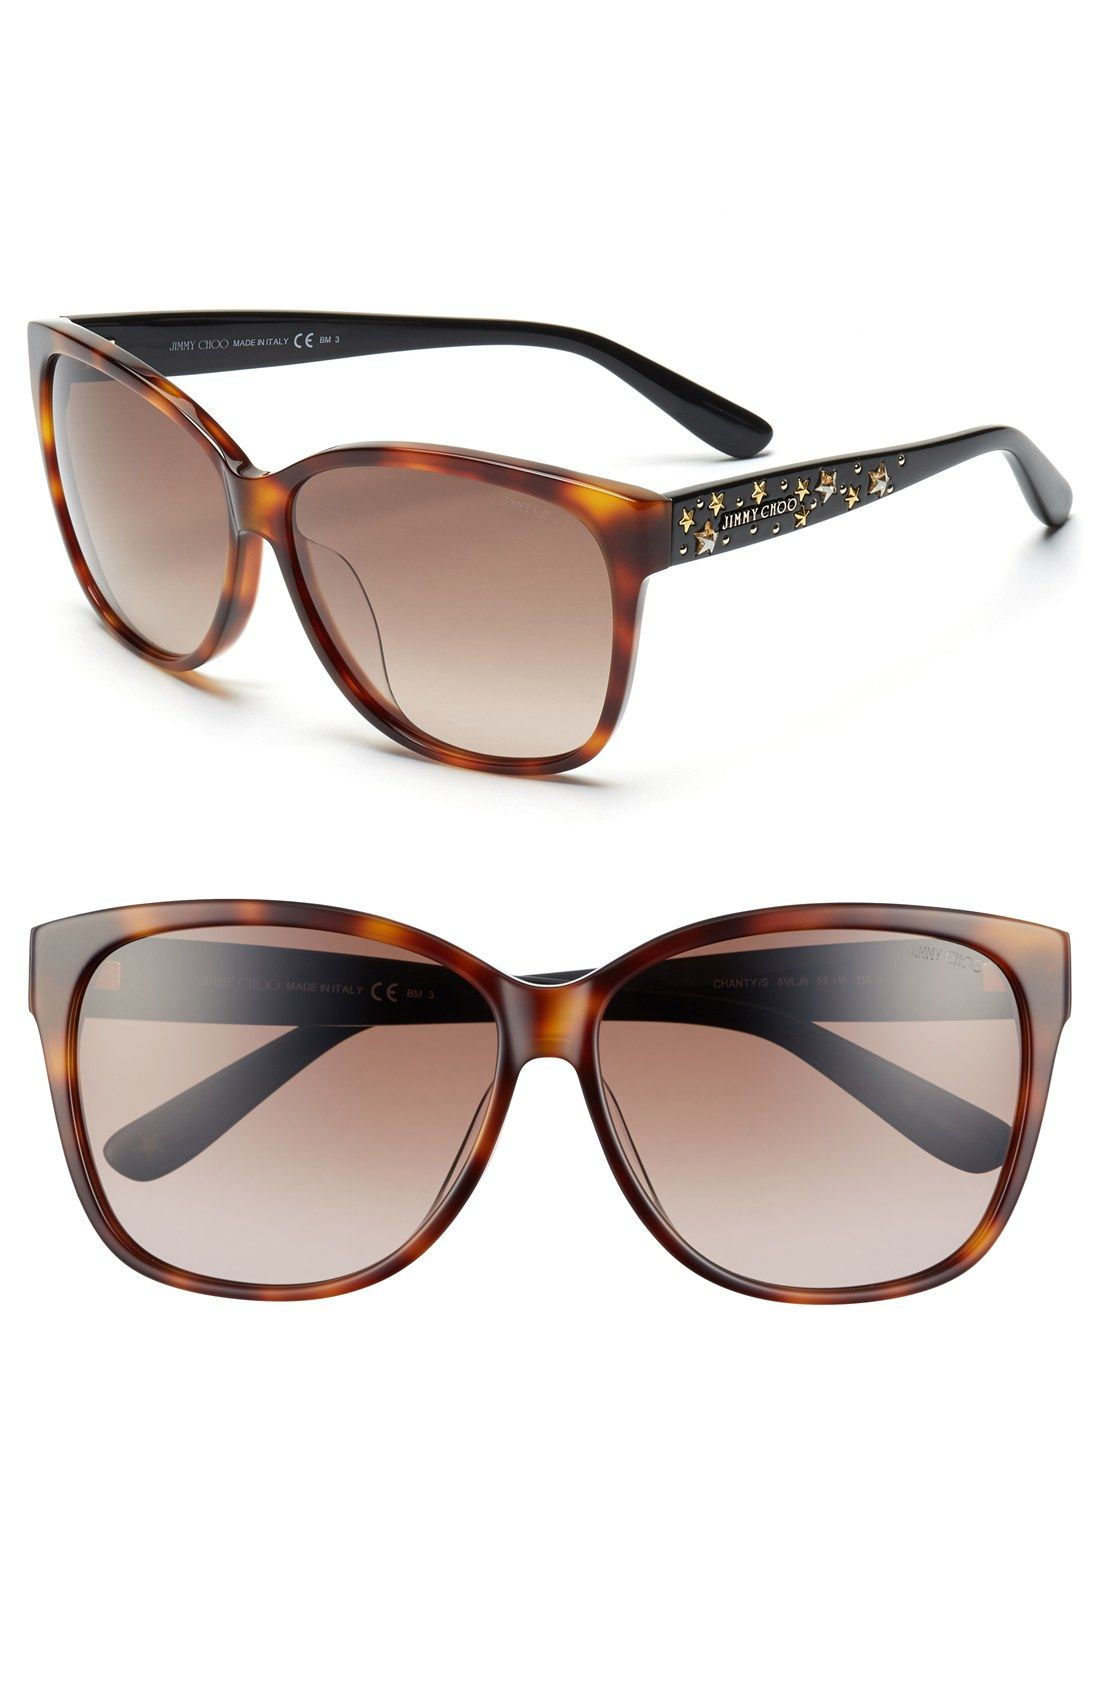 5d60fd087541 Obsessed with these Jimmy Choo sunglasses with Swarovski crystals ...